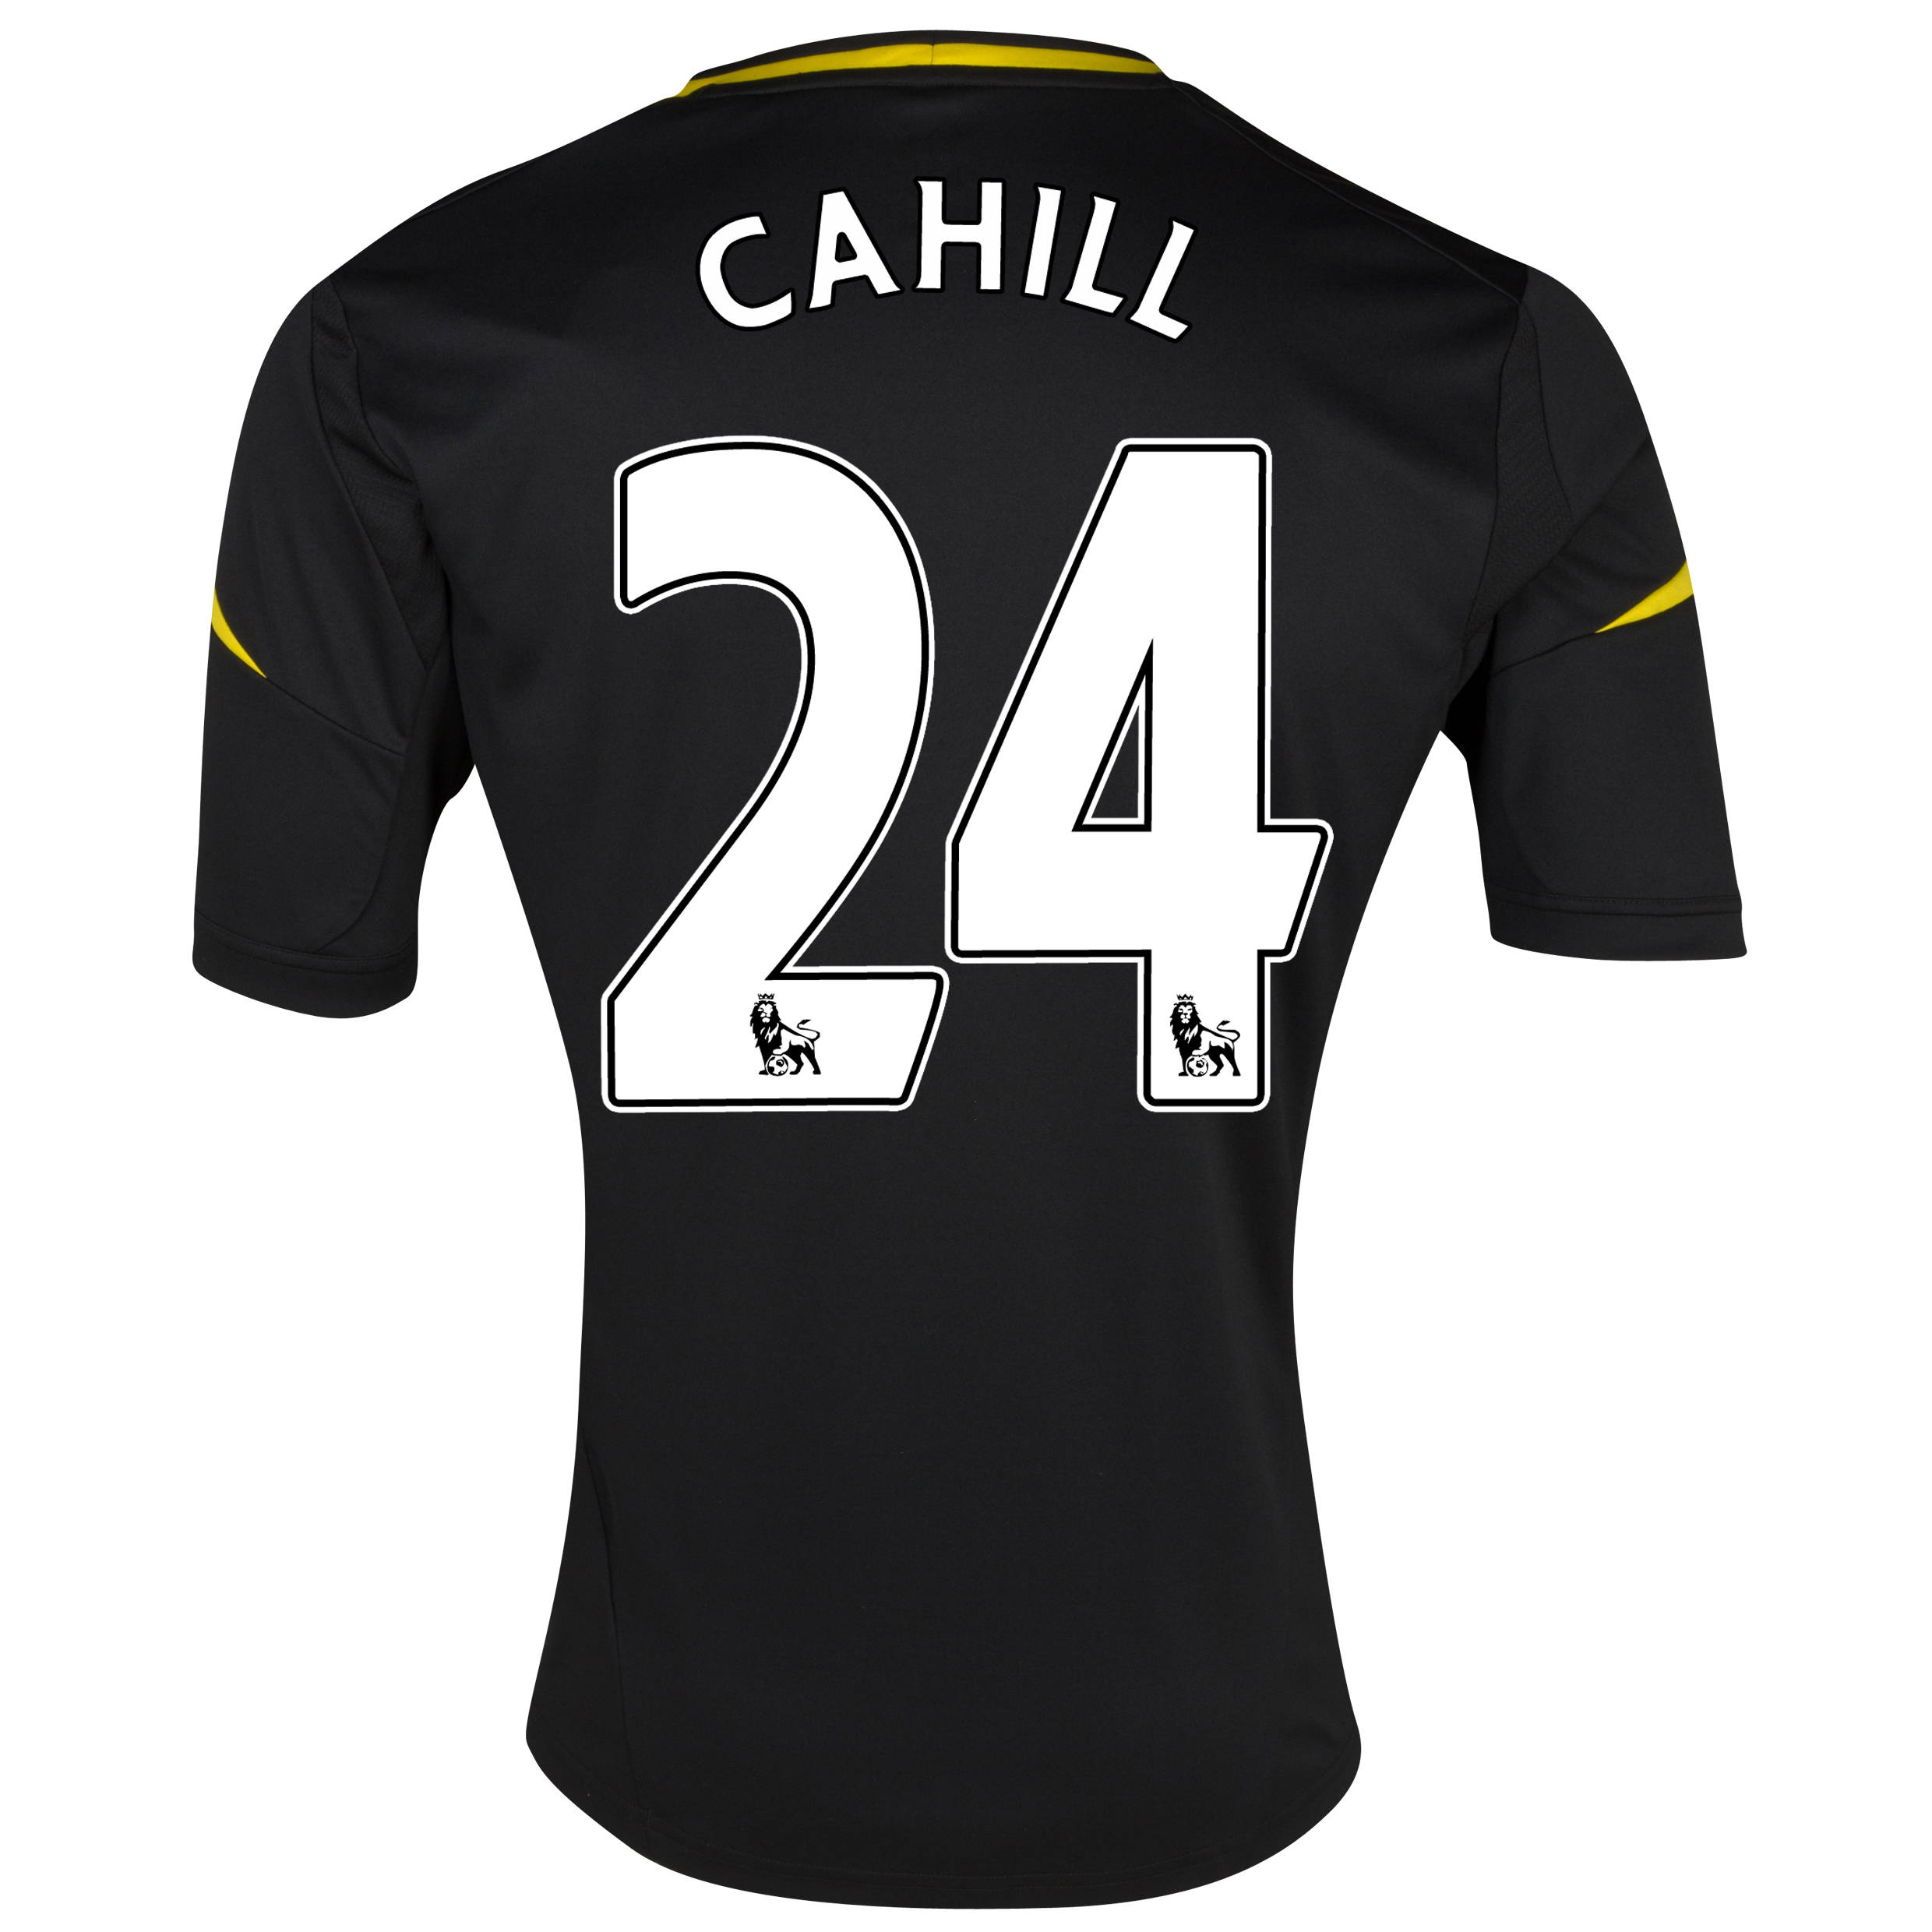 Chelsea Third Shirt 2012/13 with Cahill 24 printing